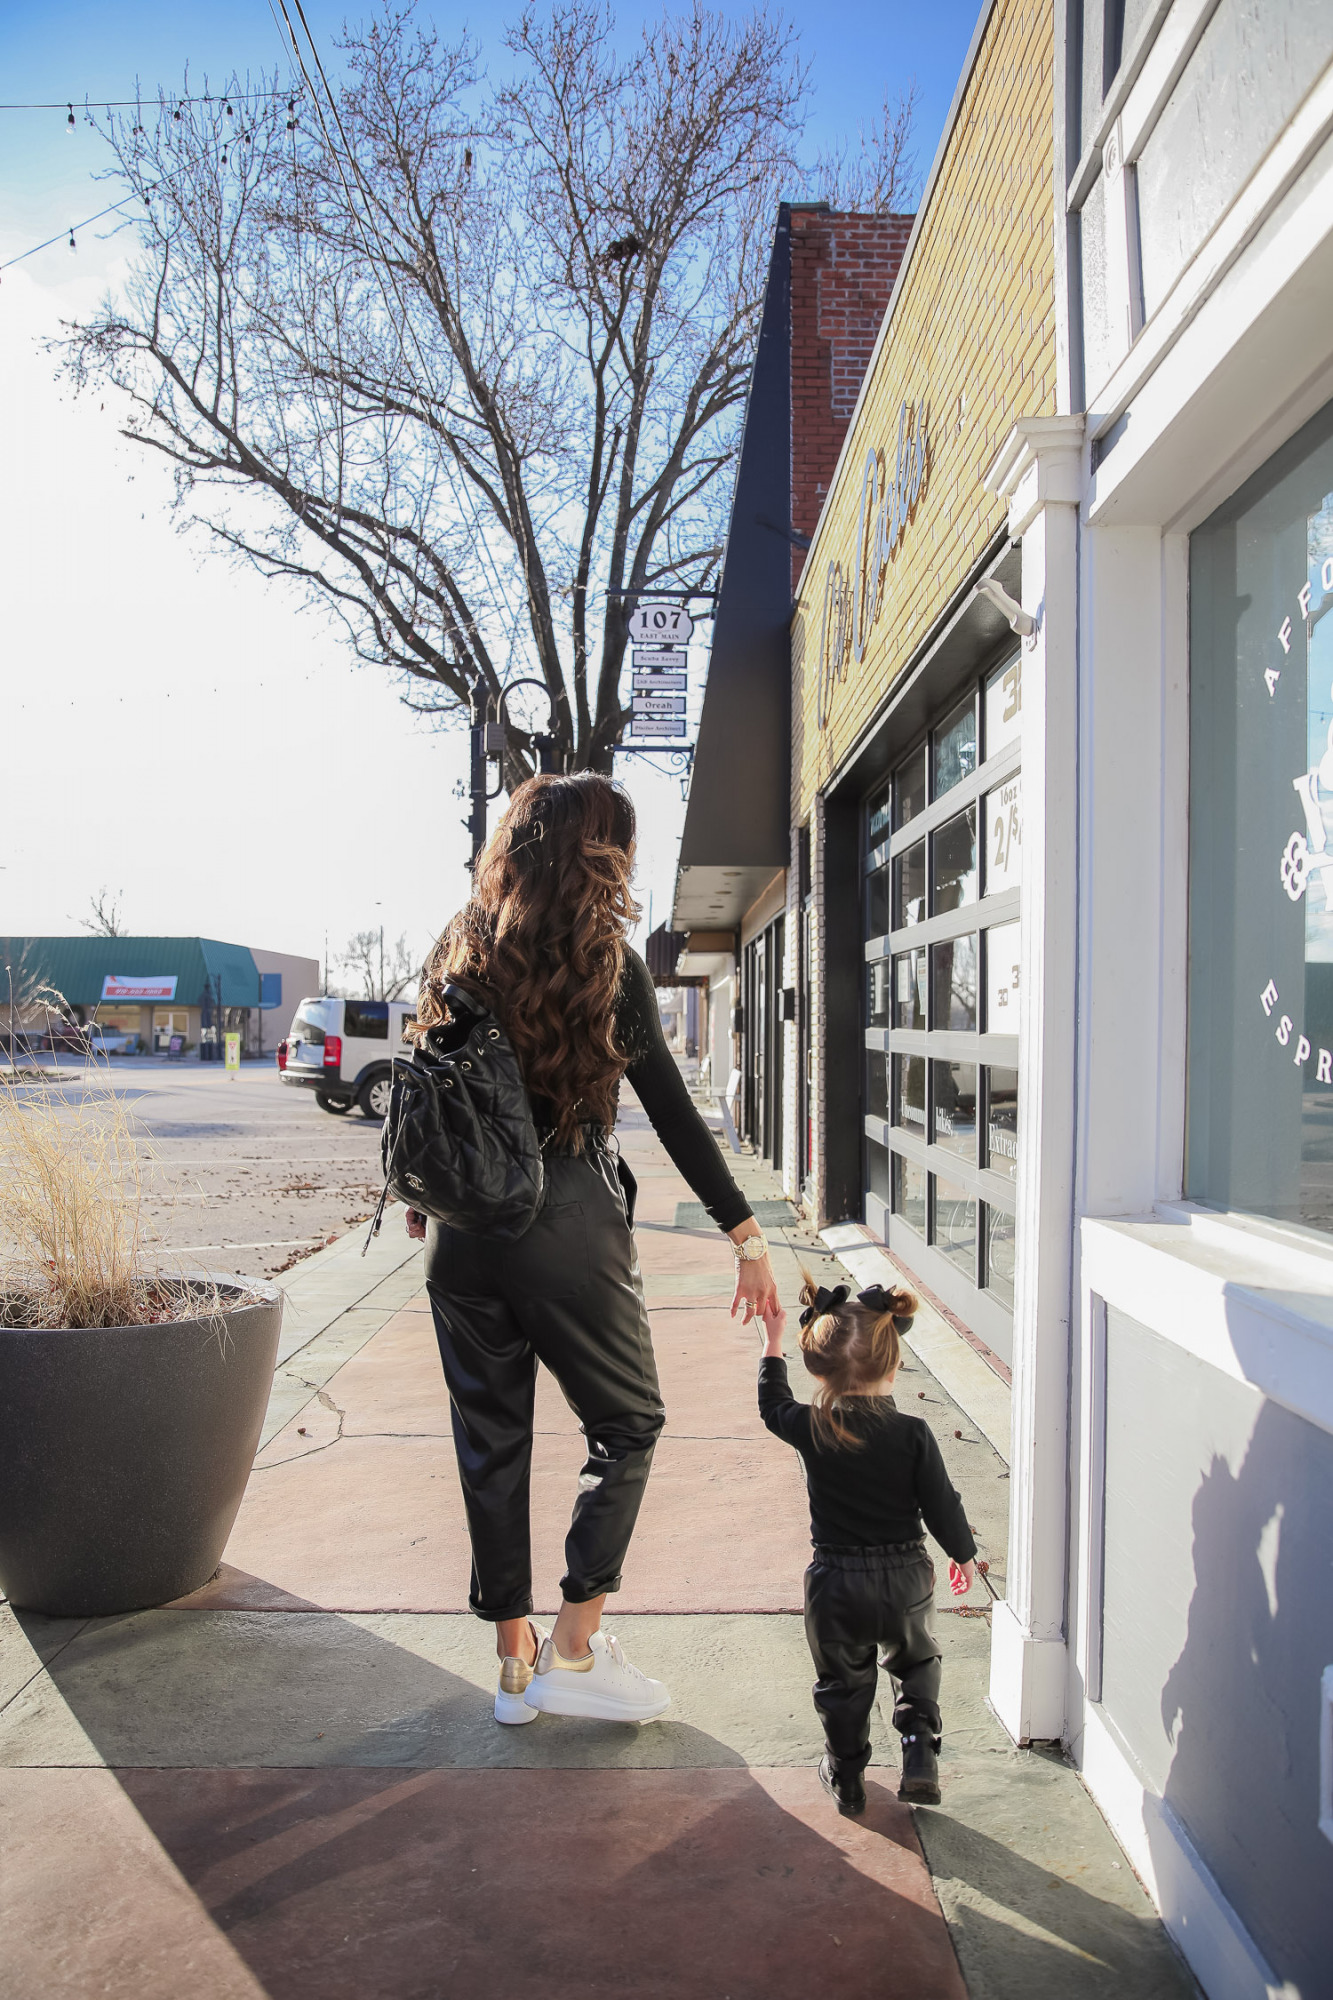 matching mommy daughter fashion outfits Pinterest, Emily Gemma, Nordstrom BP faux leather pants, loewe sunglasses, Alexander mcqueen sneakers gold white outfit pinterest  Mommy and Daughter by popular US fashion blog, The Sweetest Thing: image of a woman and her daughter walking together outside and wearing a pair of BP faux leather pants, Good American top, loewe sunglasses, Alexander mcqueen sneakers, Monica Vinader ring, Nadri bracelet, Nadri earrings, and Rolex watch.